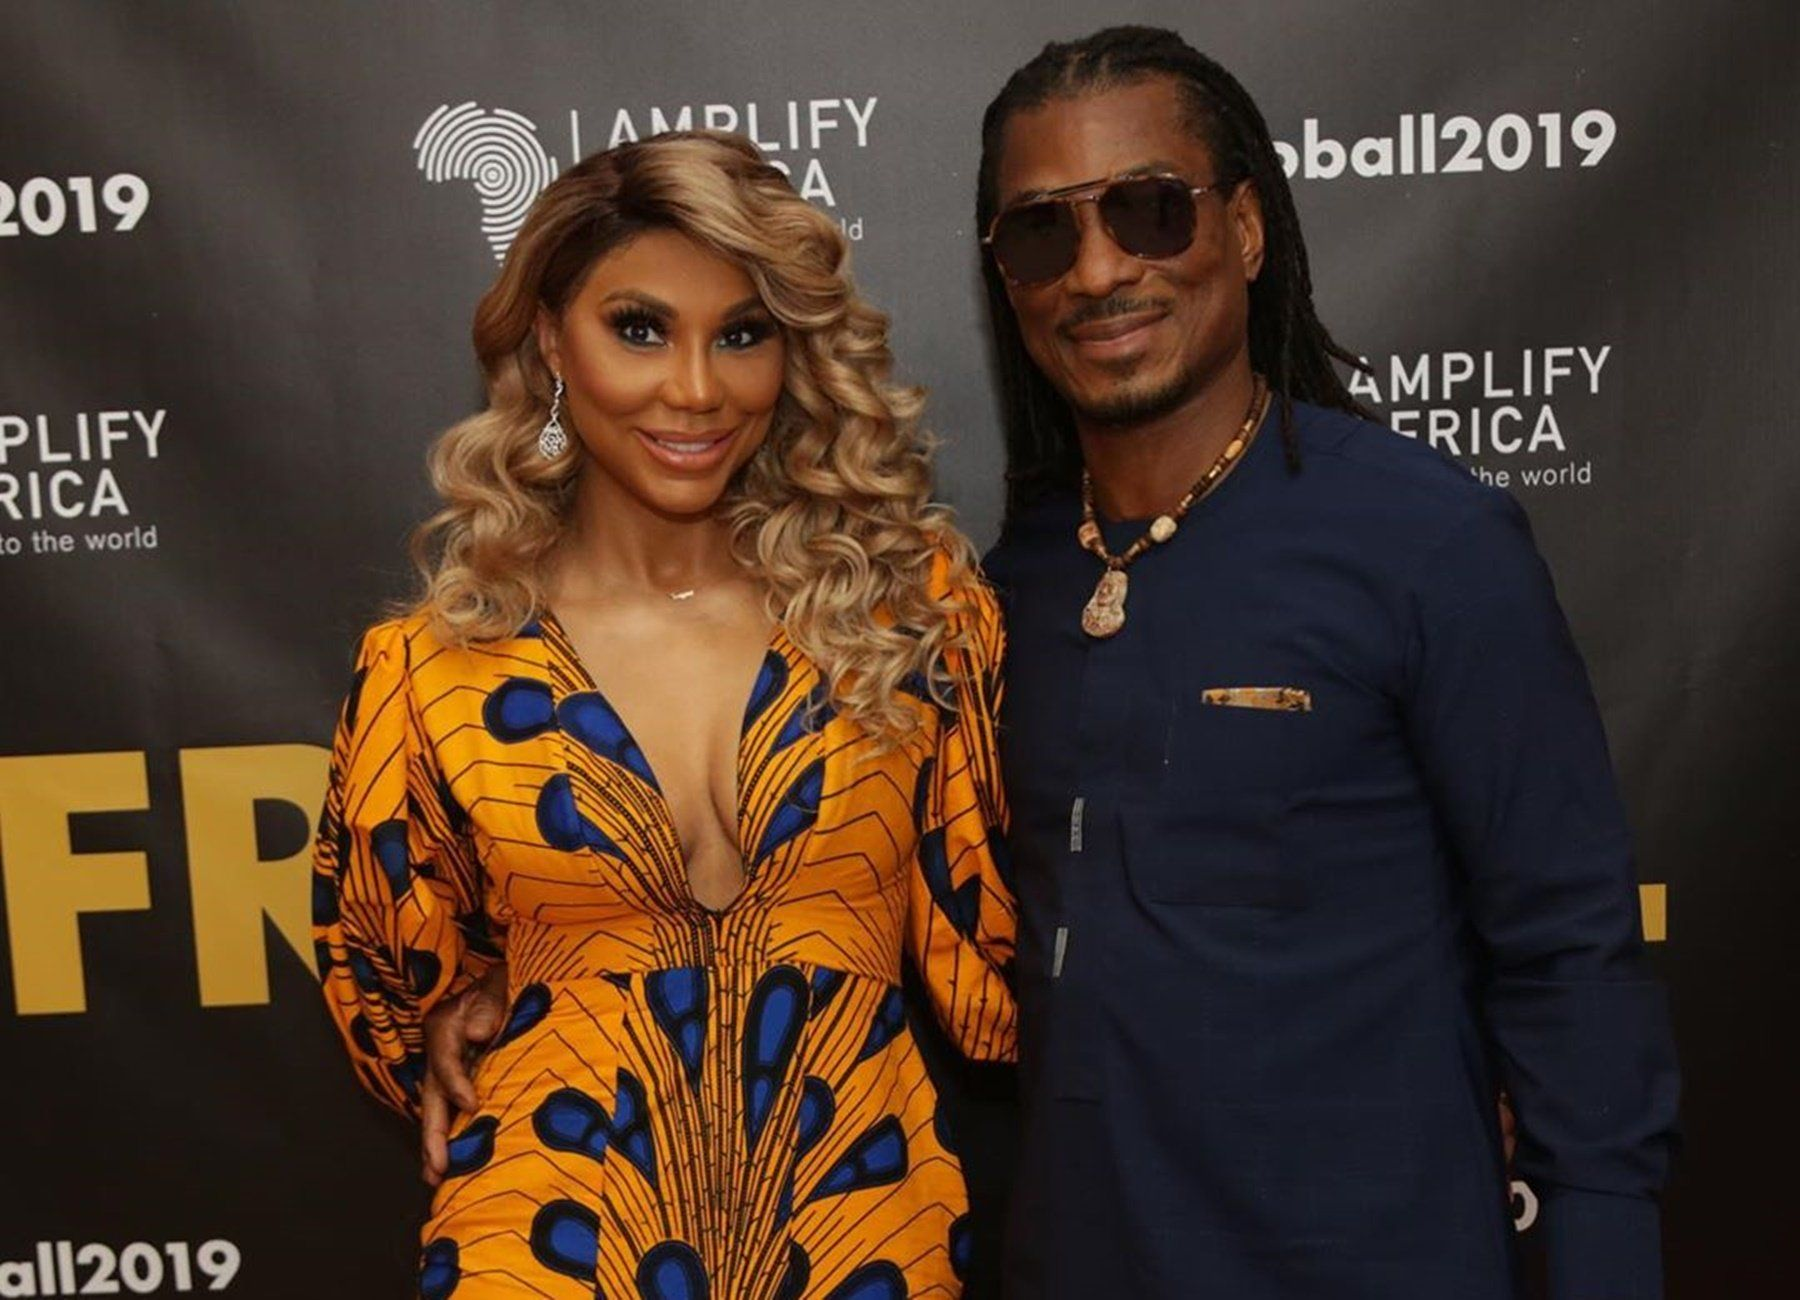 David Adefeso Wants People To Learn To Never Give Up #DavidAdefeso, #TamarBraxton celebrityinsider.org #Entertainment #celebrityinsider #celebritynews #celebrities #celebrity